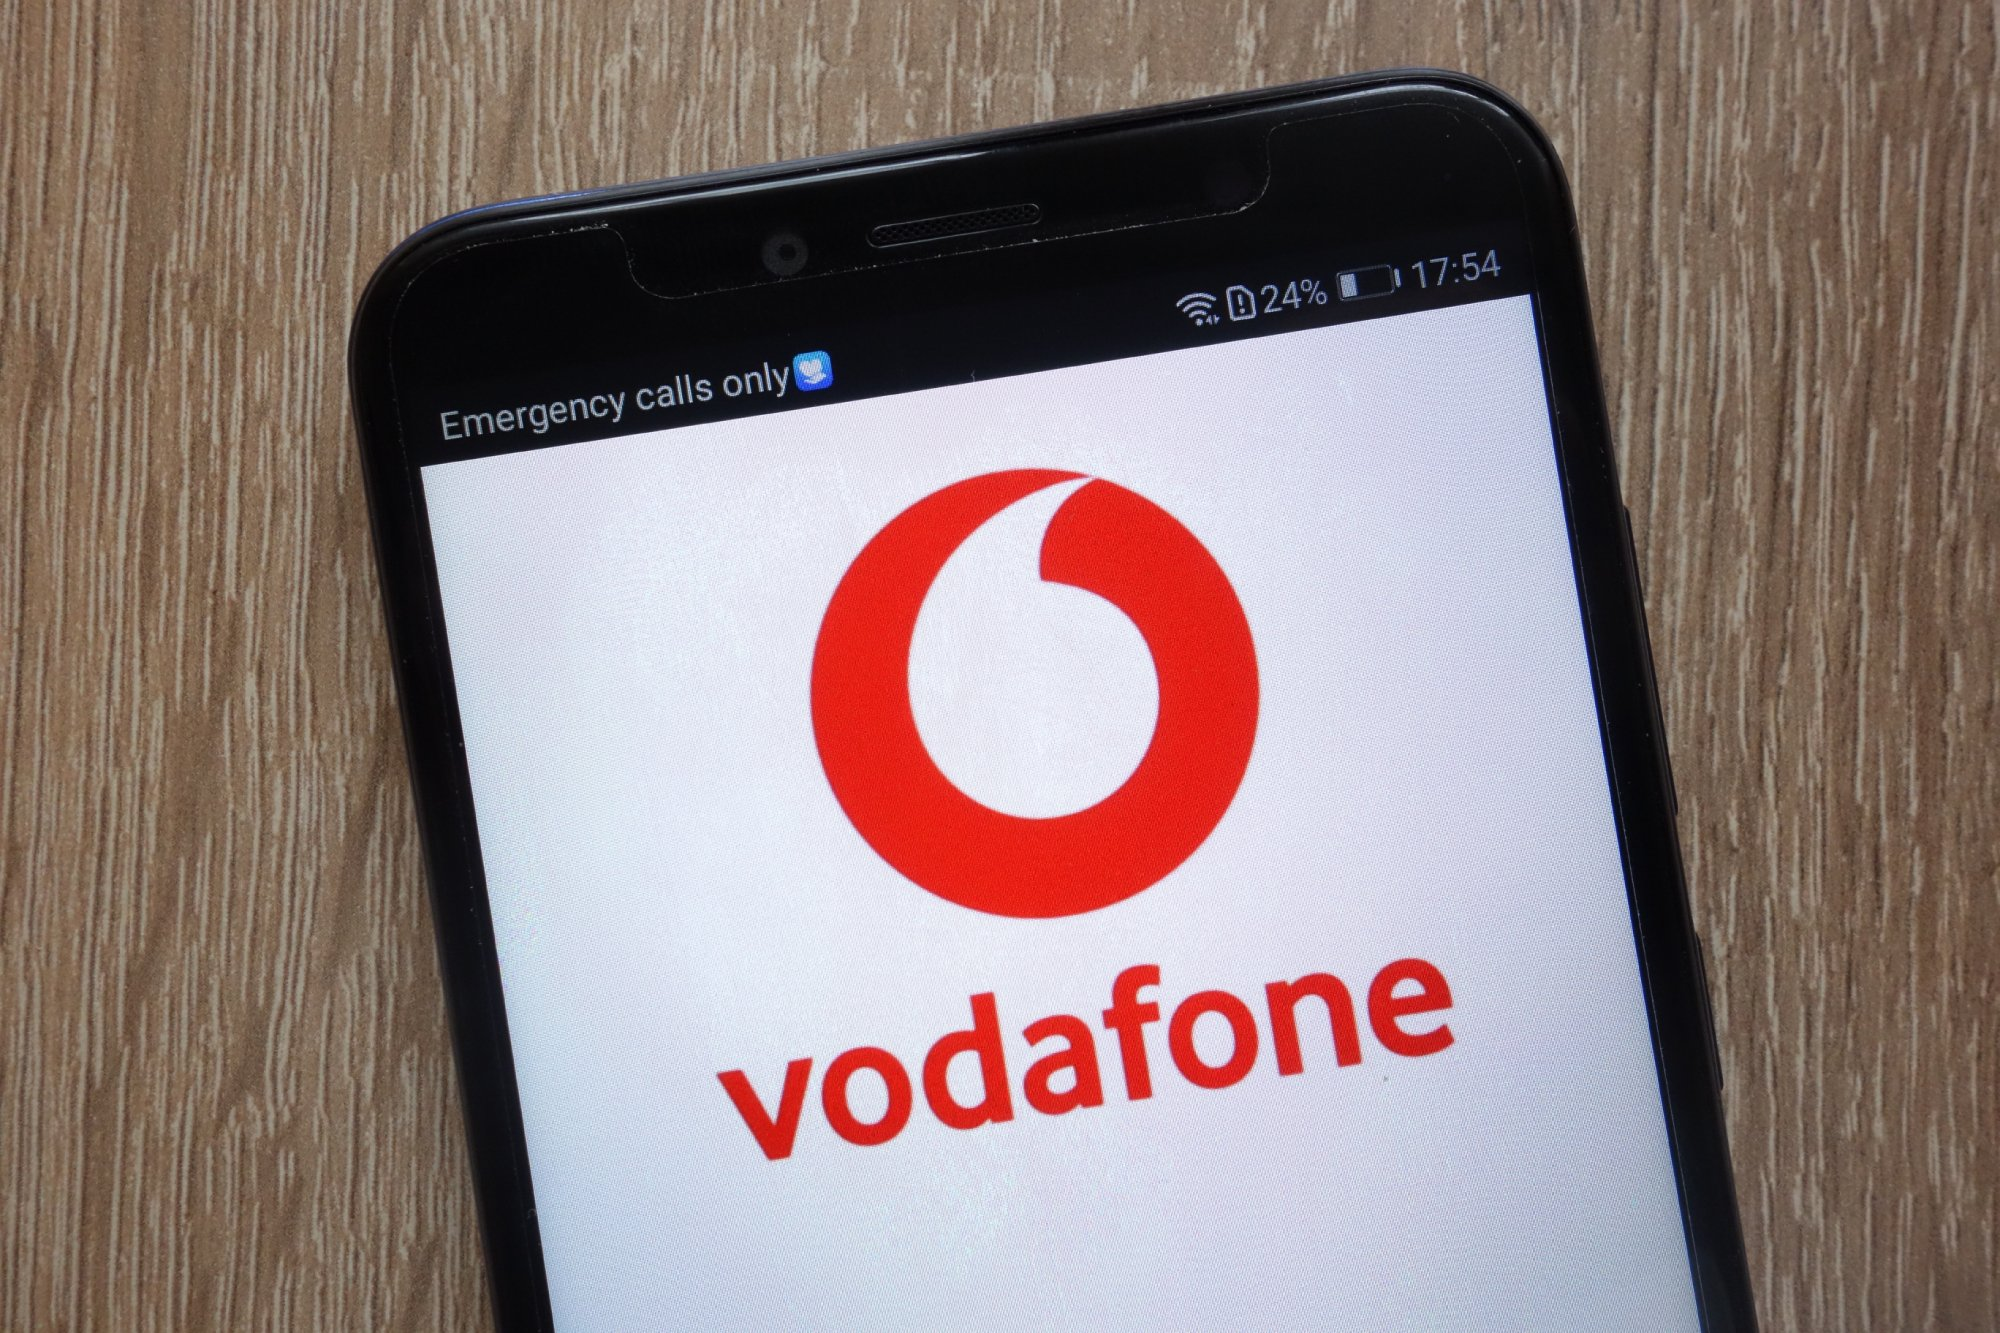 Best Vodafone Mobile Deals Pick Up A Smartphone Contract Or Sim Only Deal This Christmas Expert Reviews